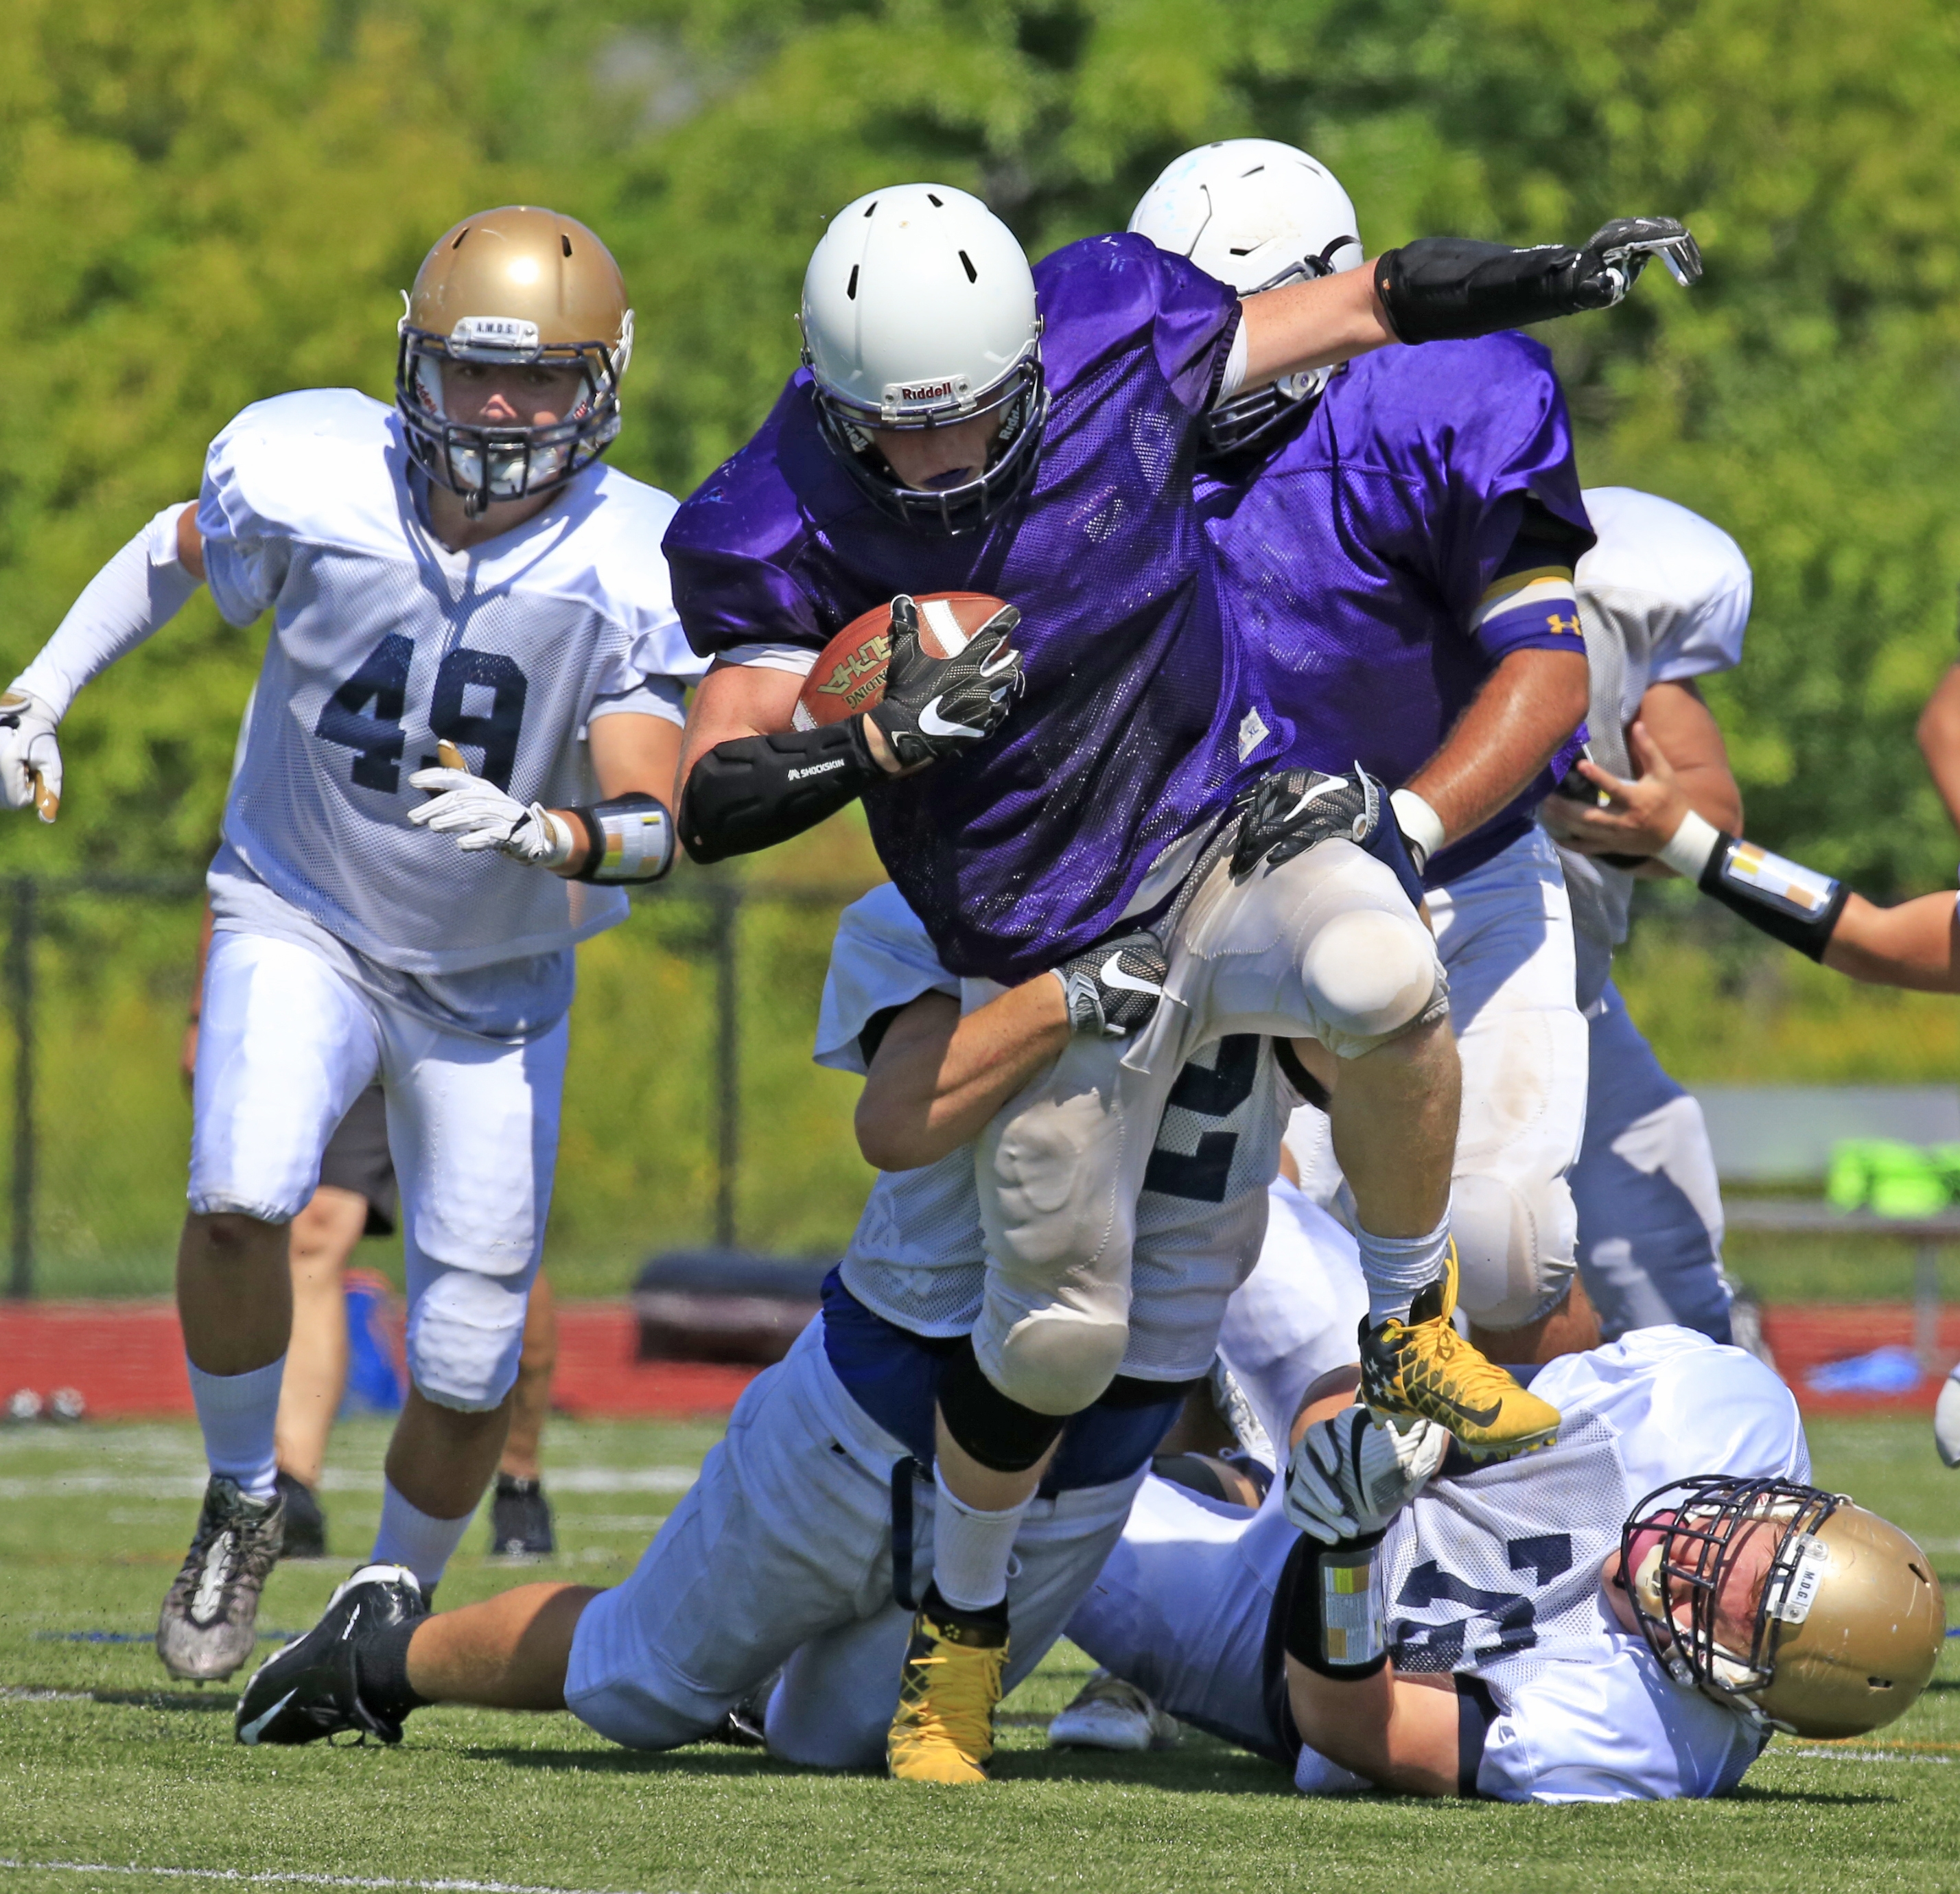 Springville running back Ian Baker, Connolly Cup candidate, runs against Canisius during a preseason scrimmage.